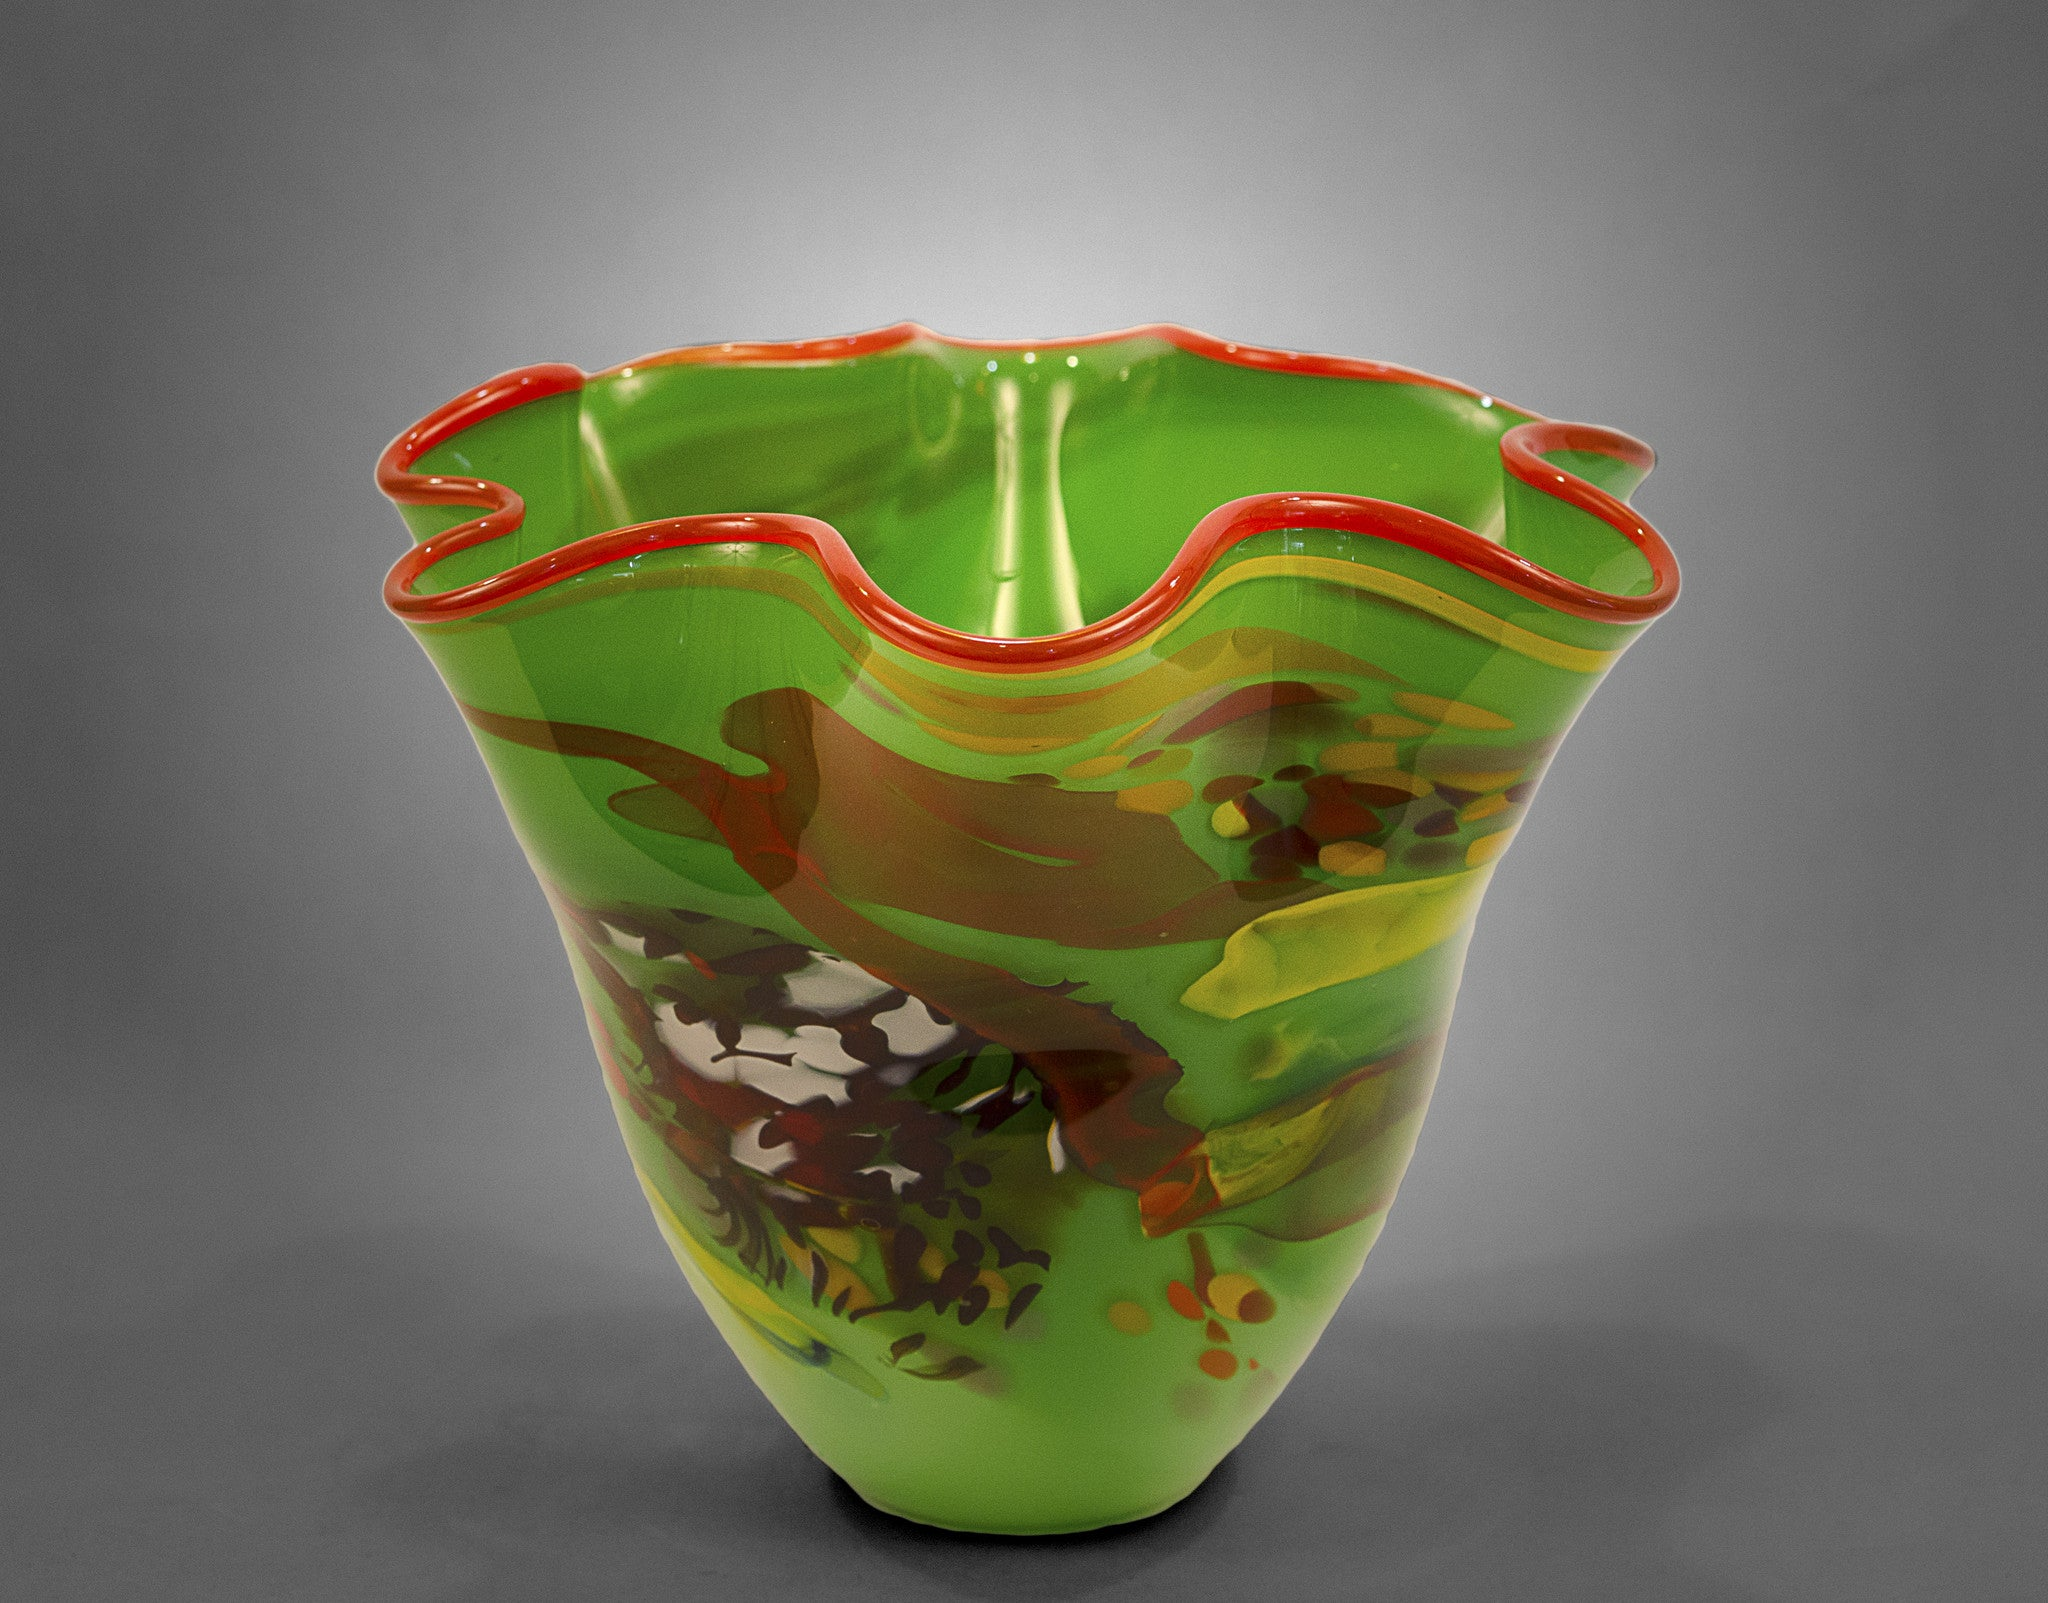 Fluted bowl / vase with broken shards of recycled glass and green base color and red rim